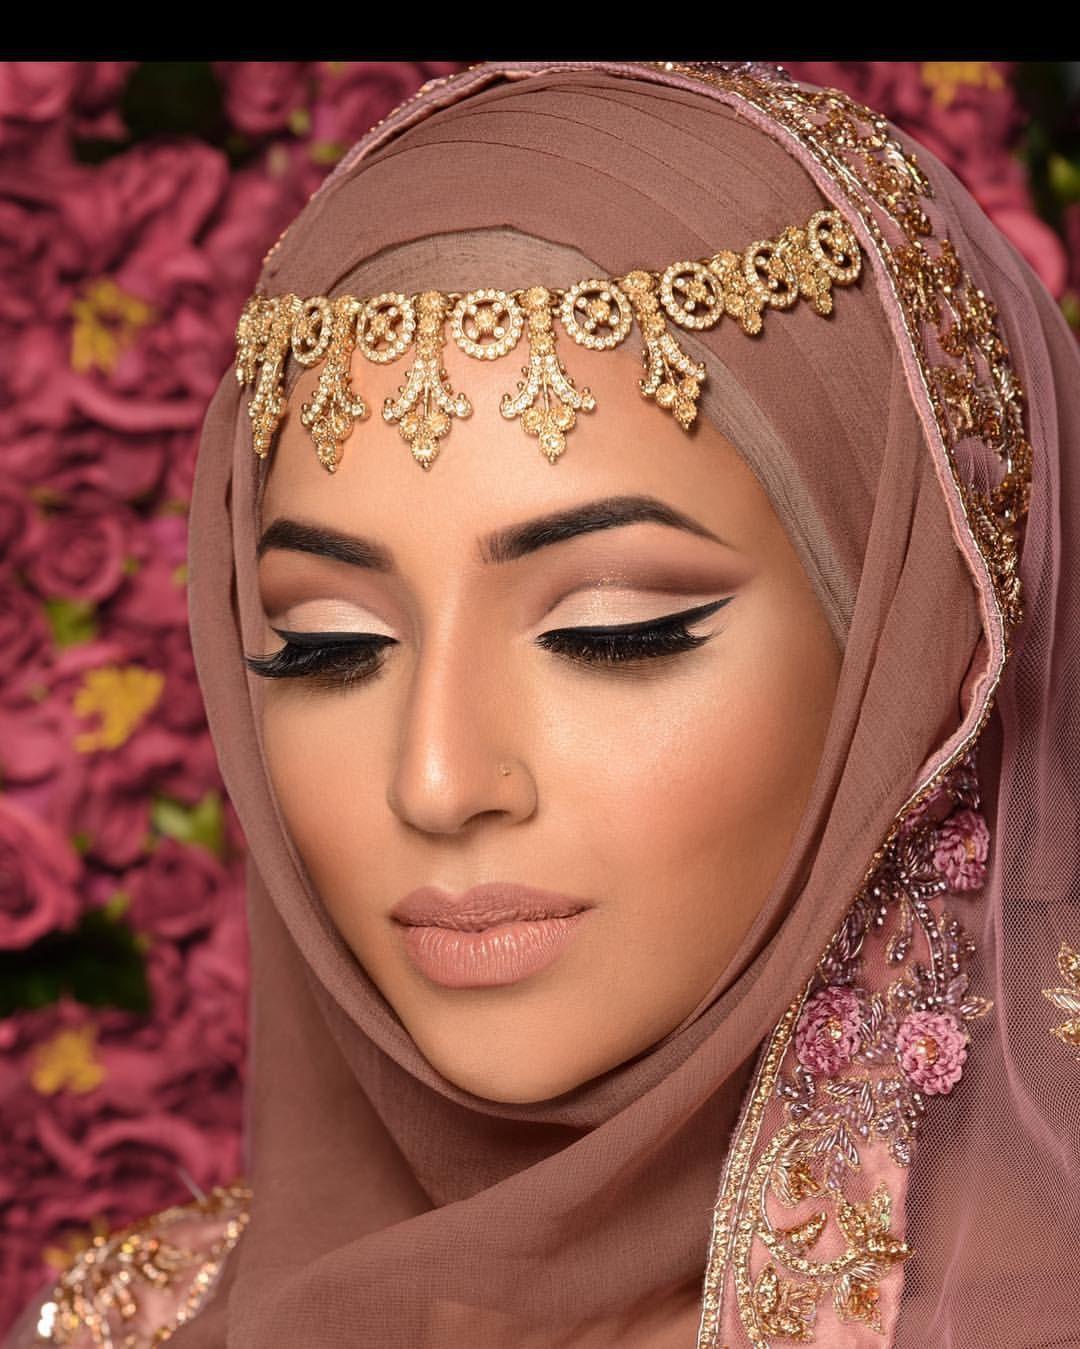 "592 Likes, 9 Comments - Humaira Waza | Hijab Stylist (@humairawaza) on Instagram: ""*Specialist 1-2-1 training for BRIDAL make up artists now available for a limited time - get in…"""